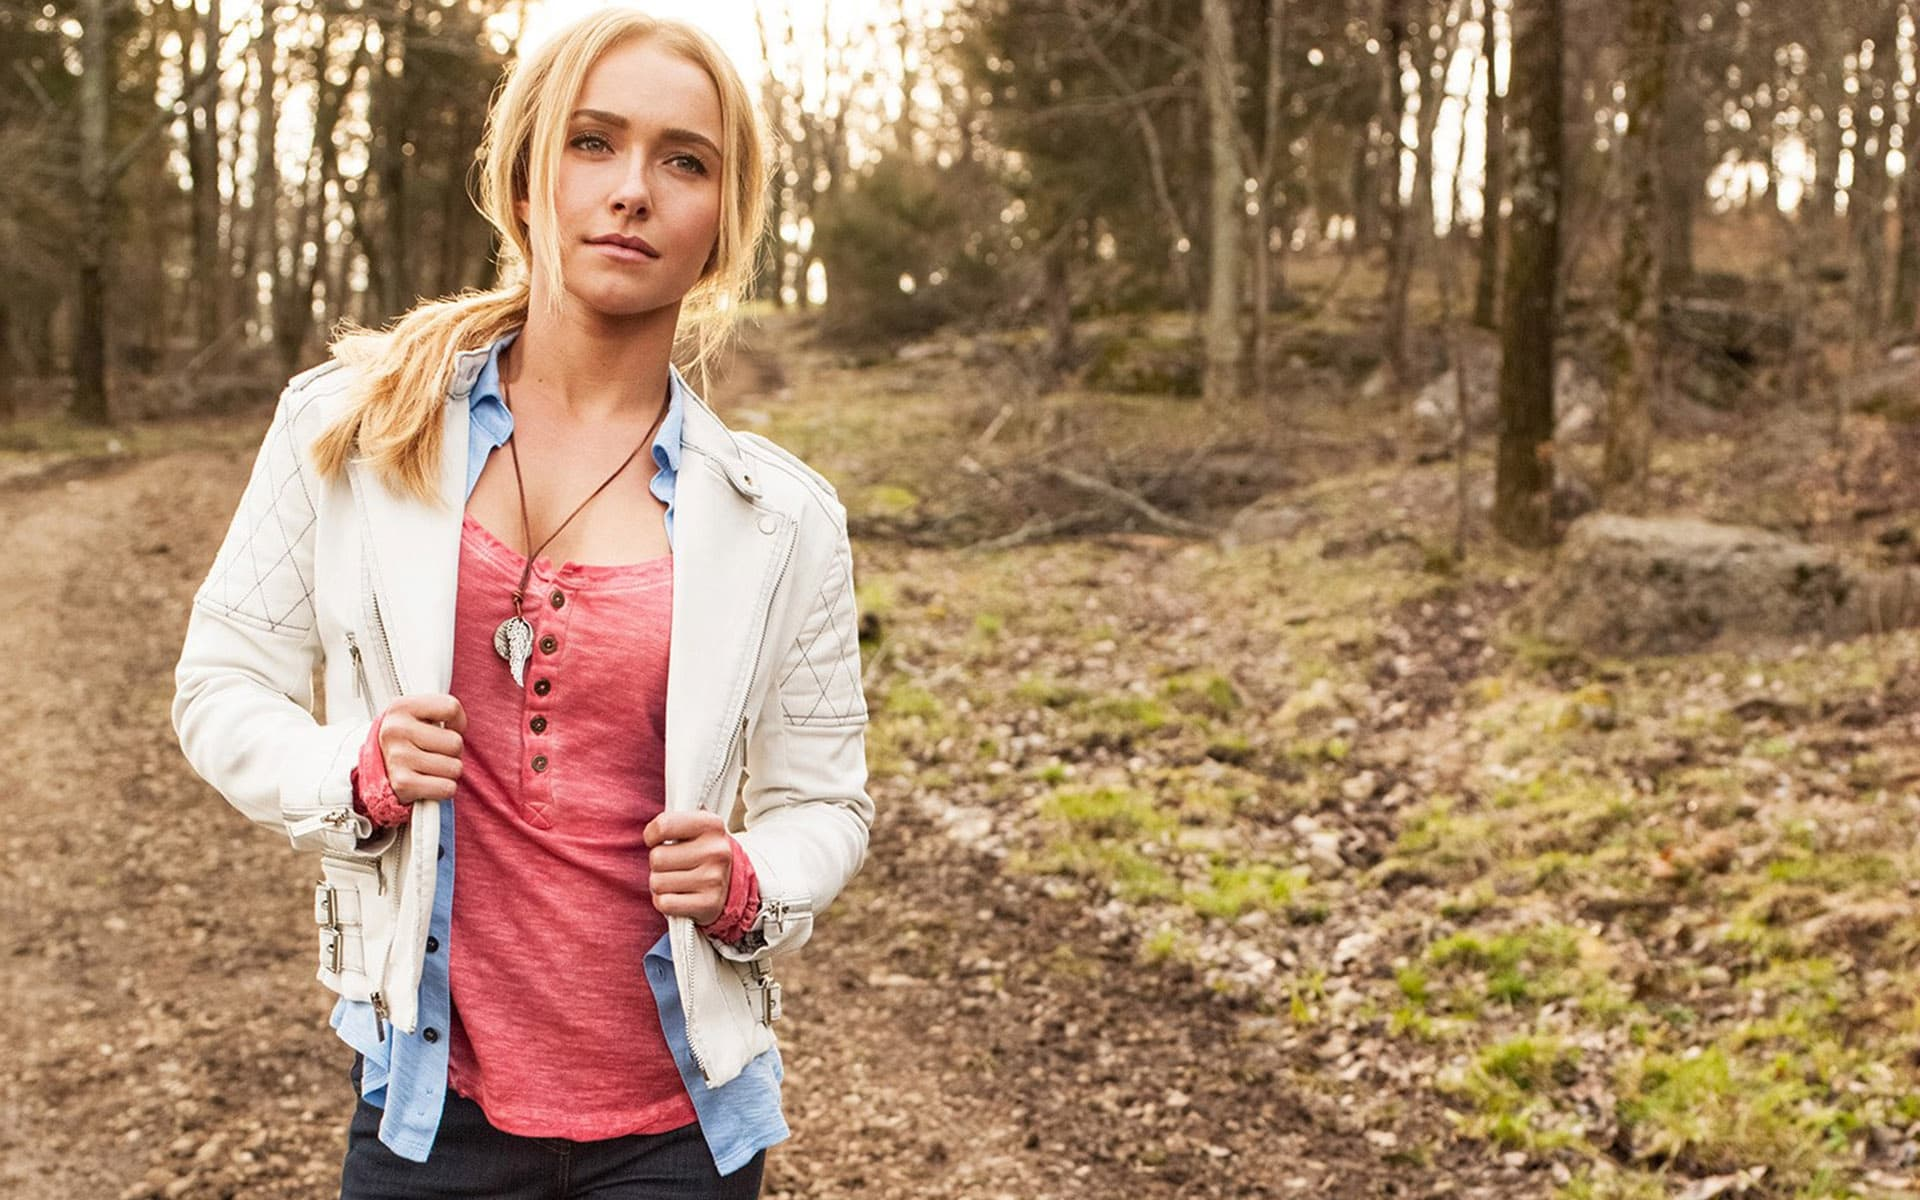 Hayden Panettiere In The Forest HD Wallpapers Widescreen